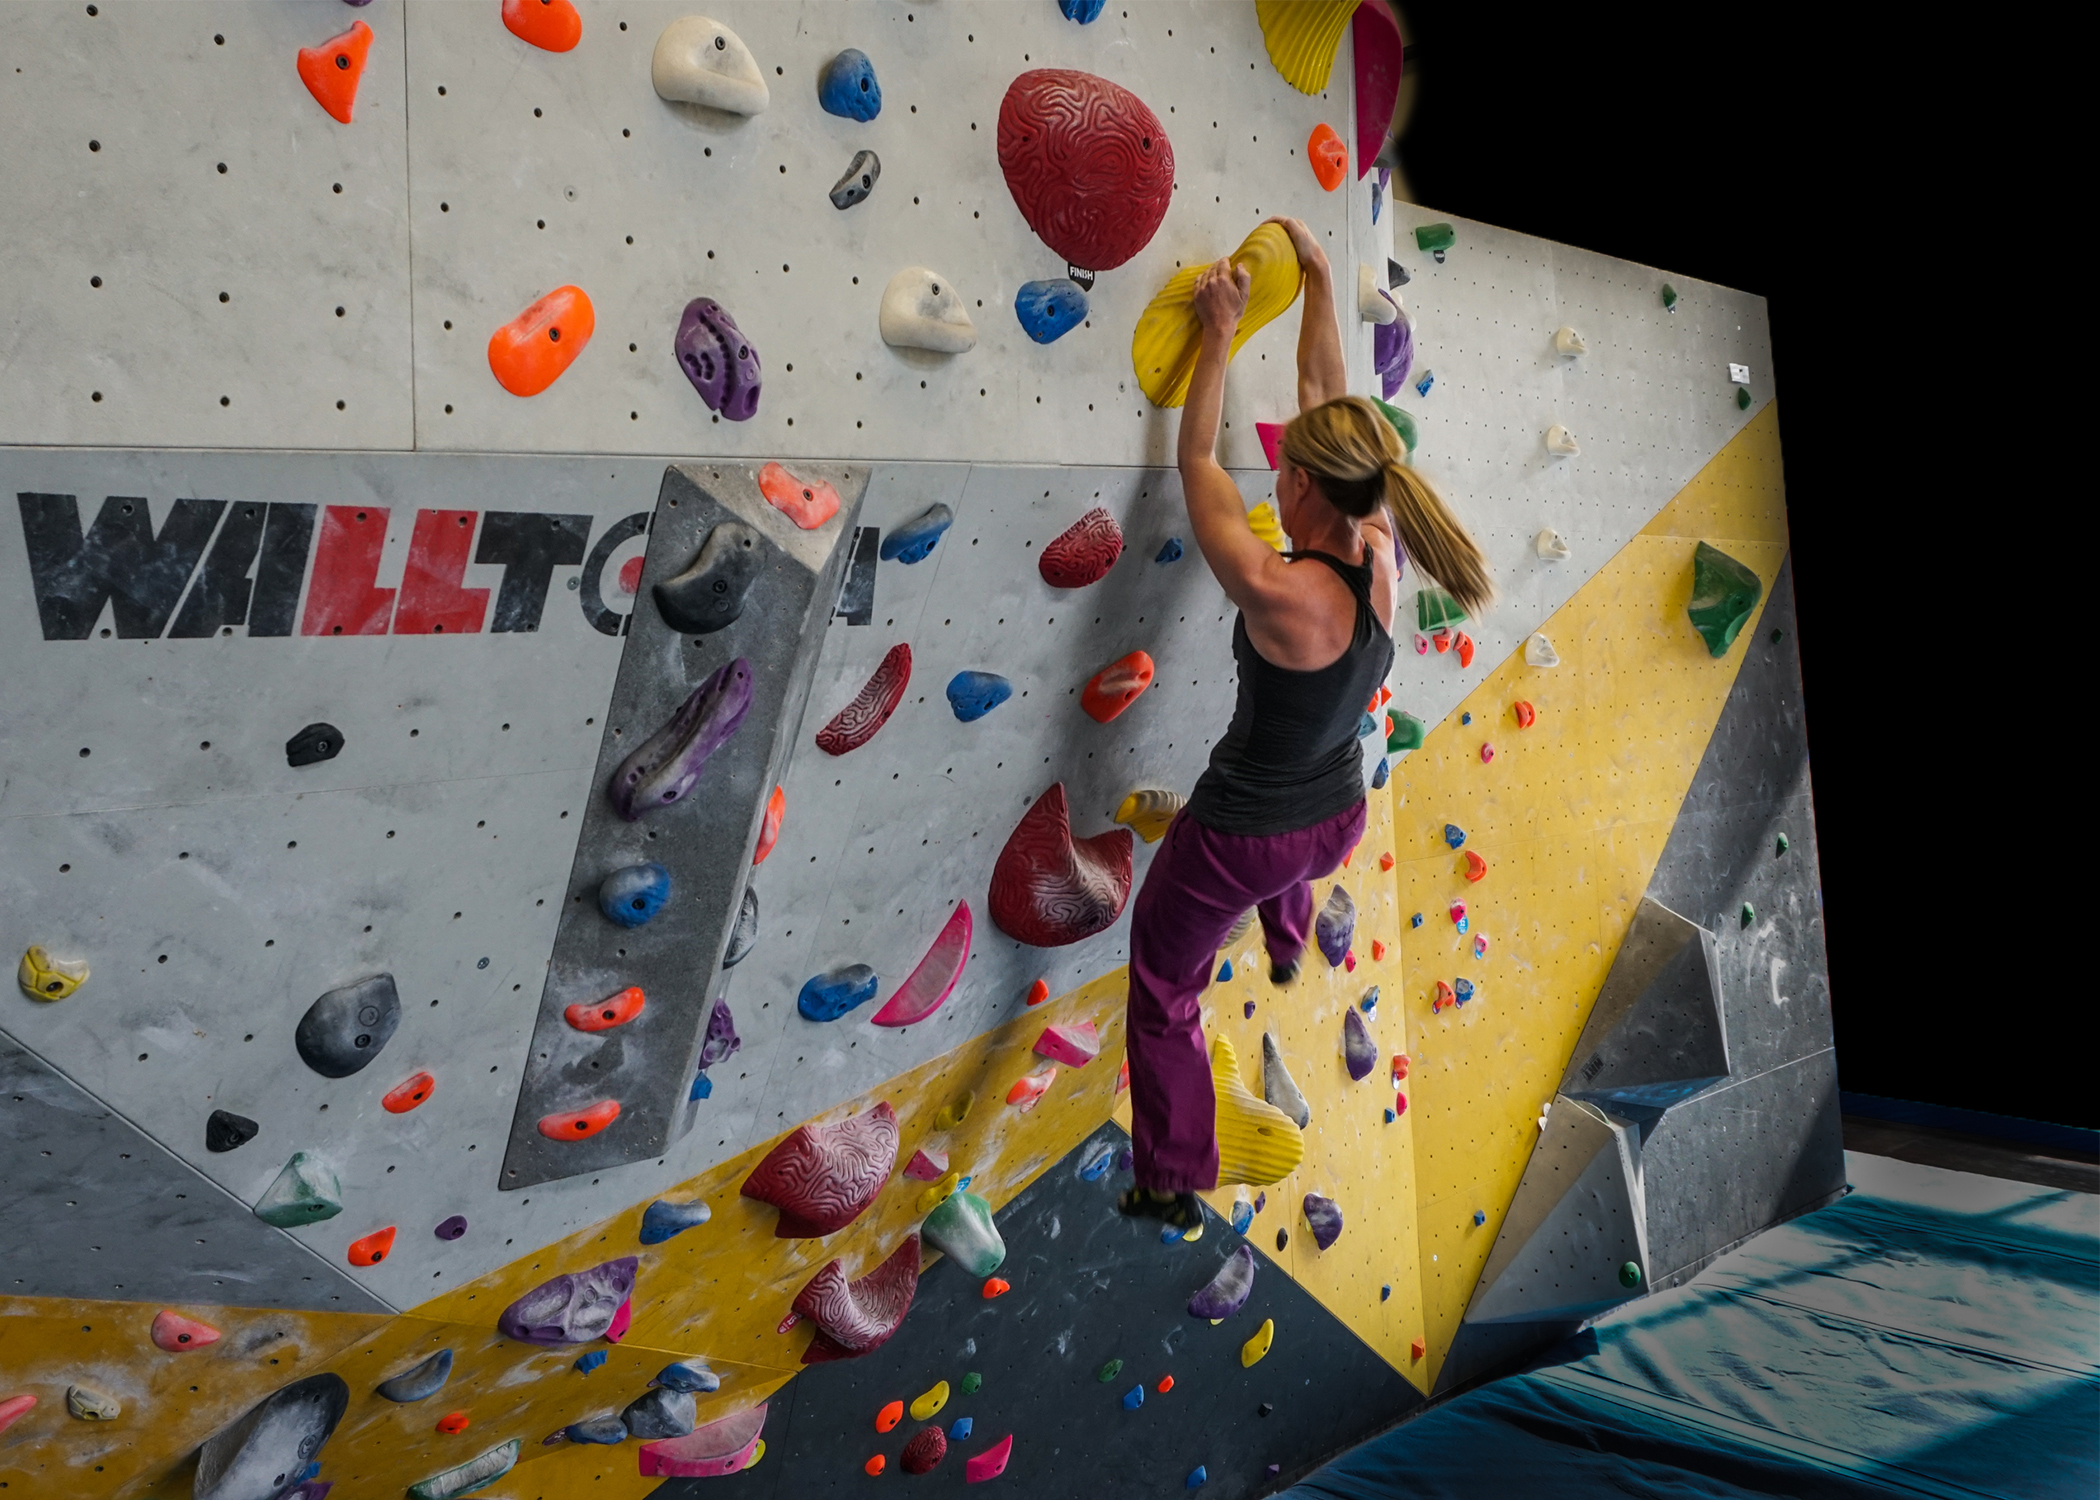 Strong mother climbing training bouldering beauty strength